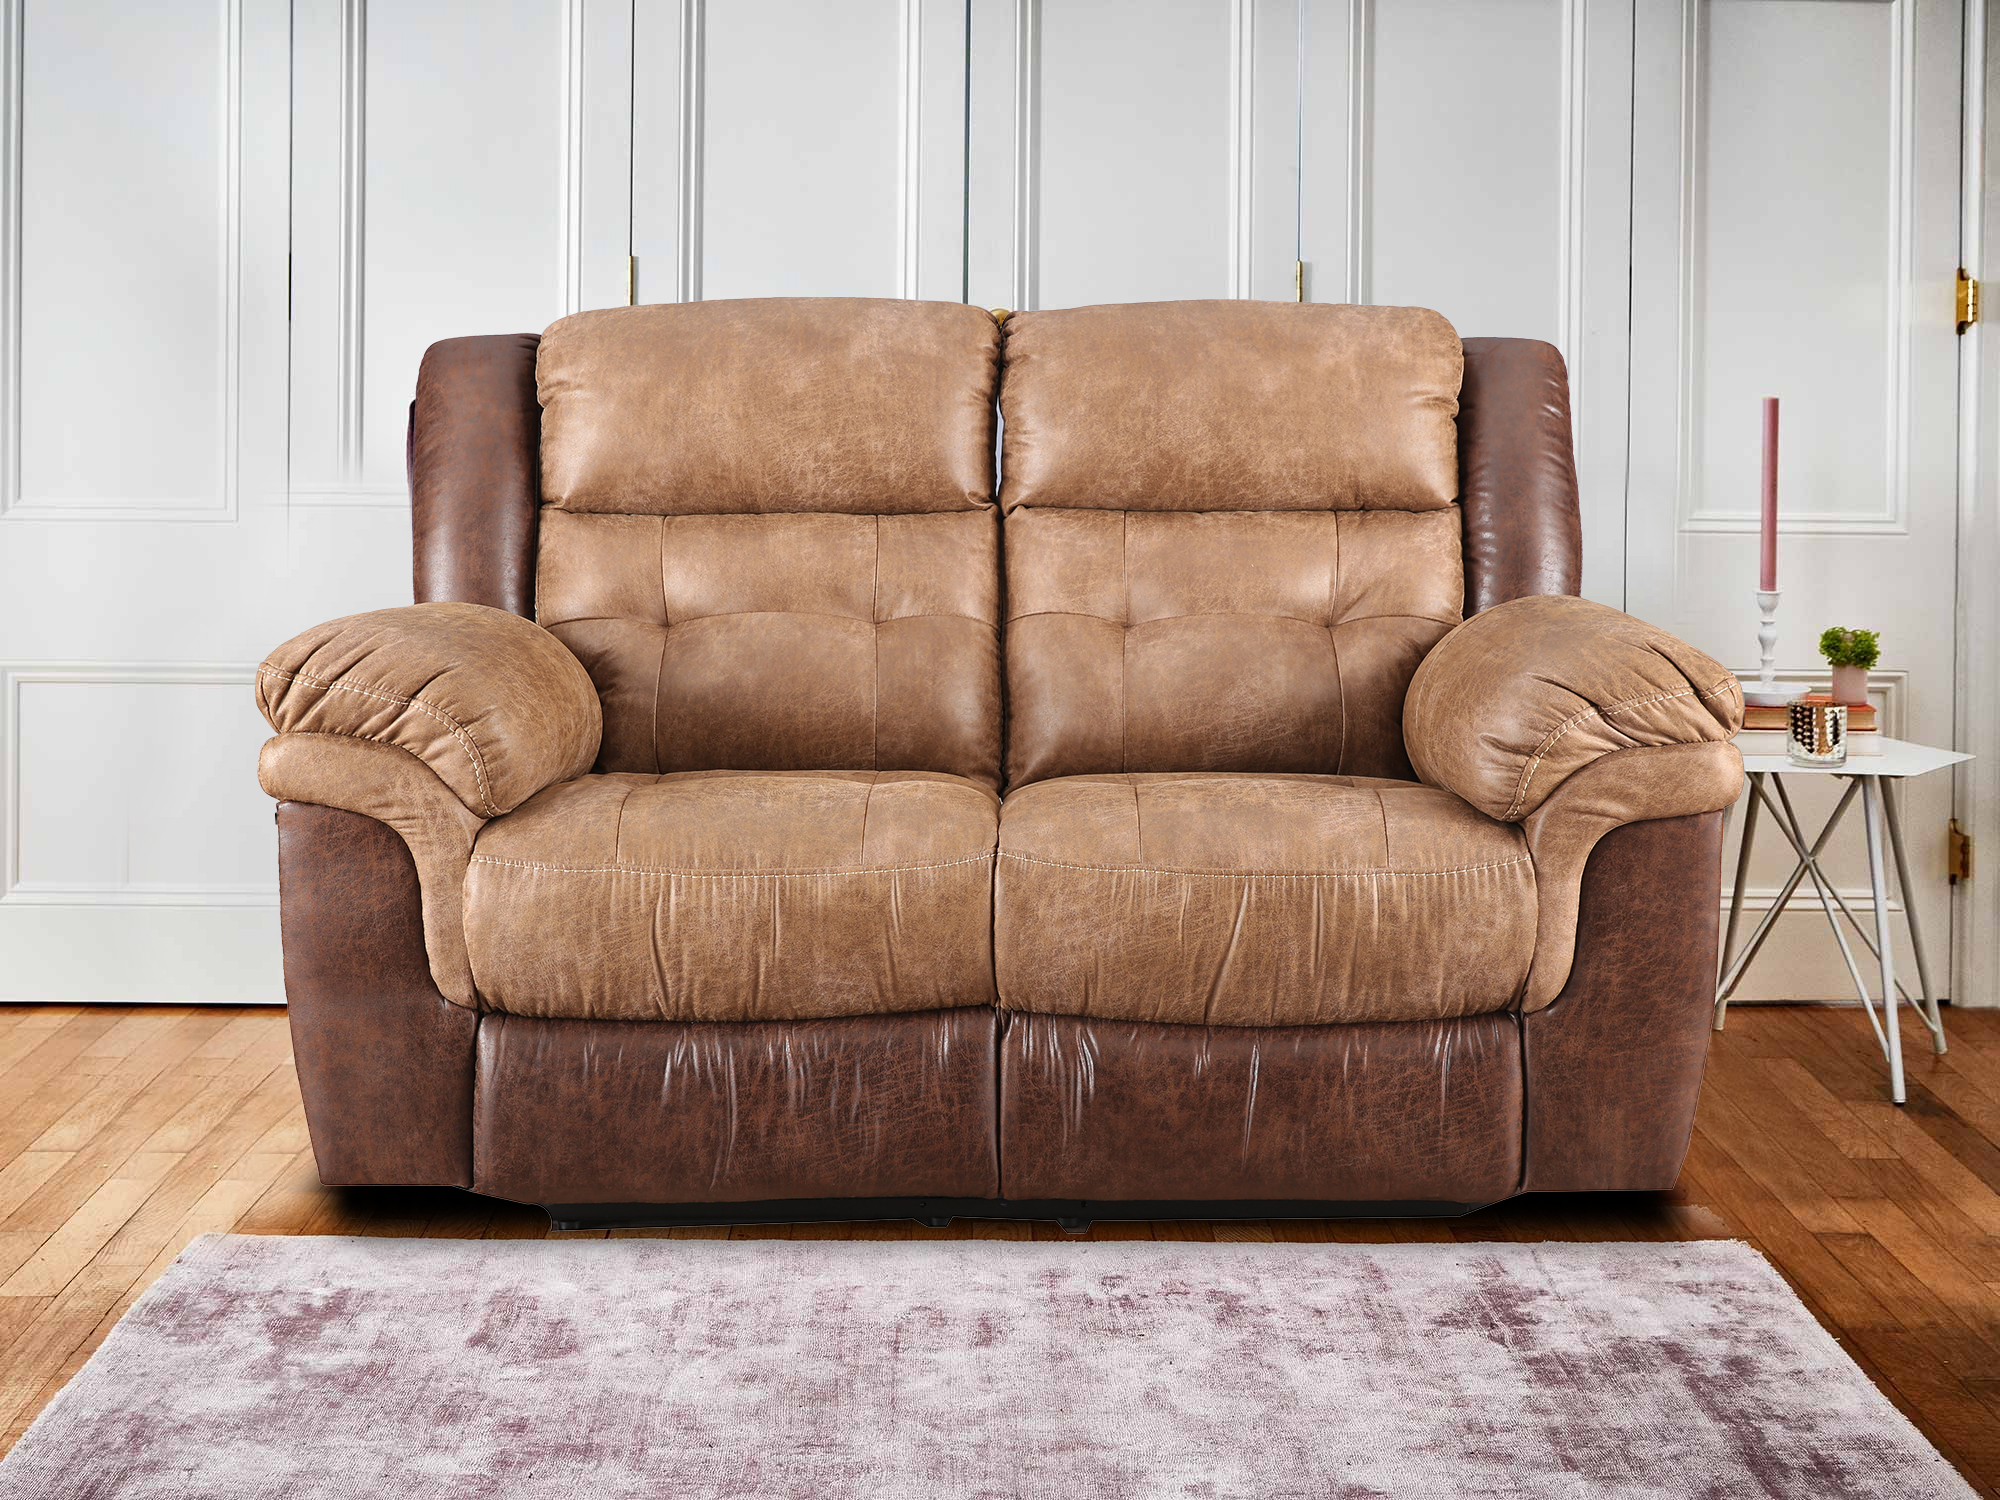 Eclairs Leather Two Seater Recliner in Brown Colour by HomeTown